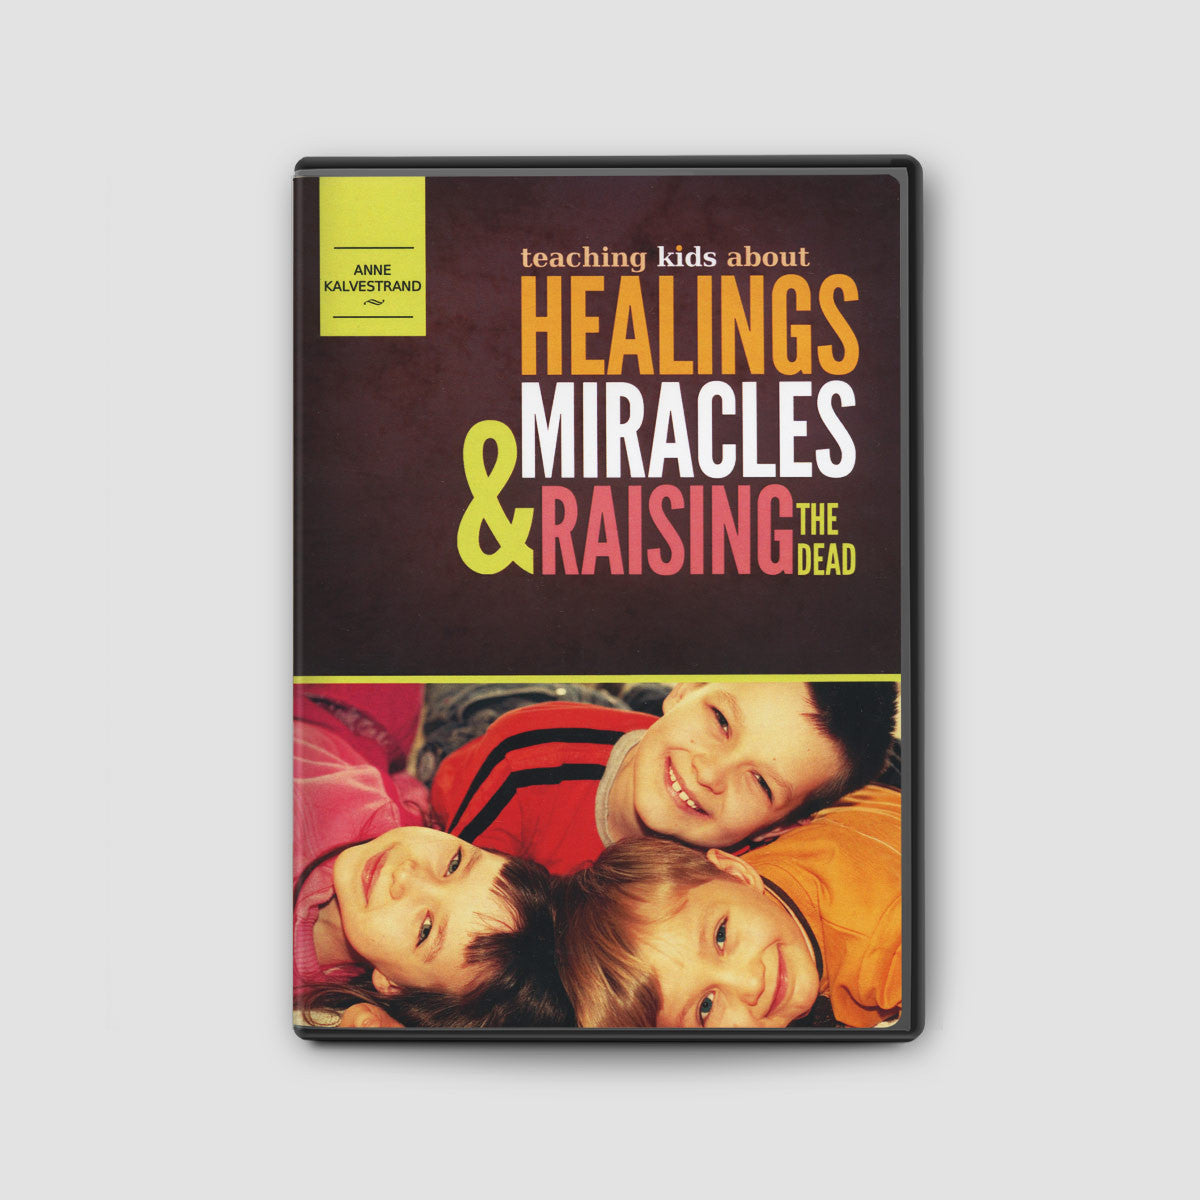 Teaching Kids About Healings, Miracles & Raising the Dead